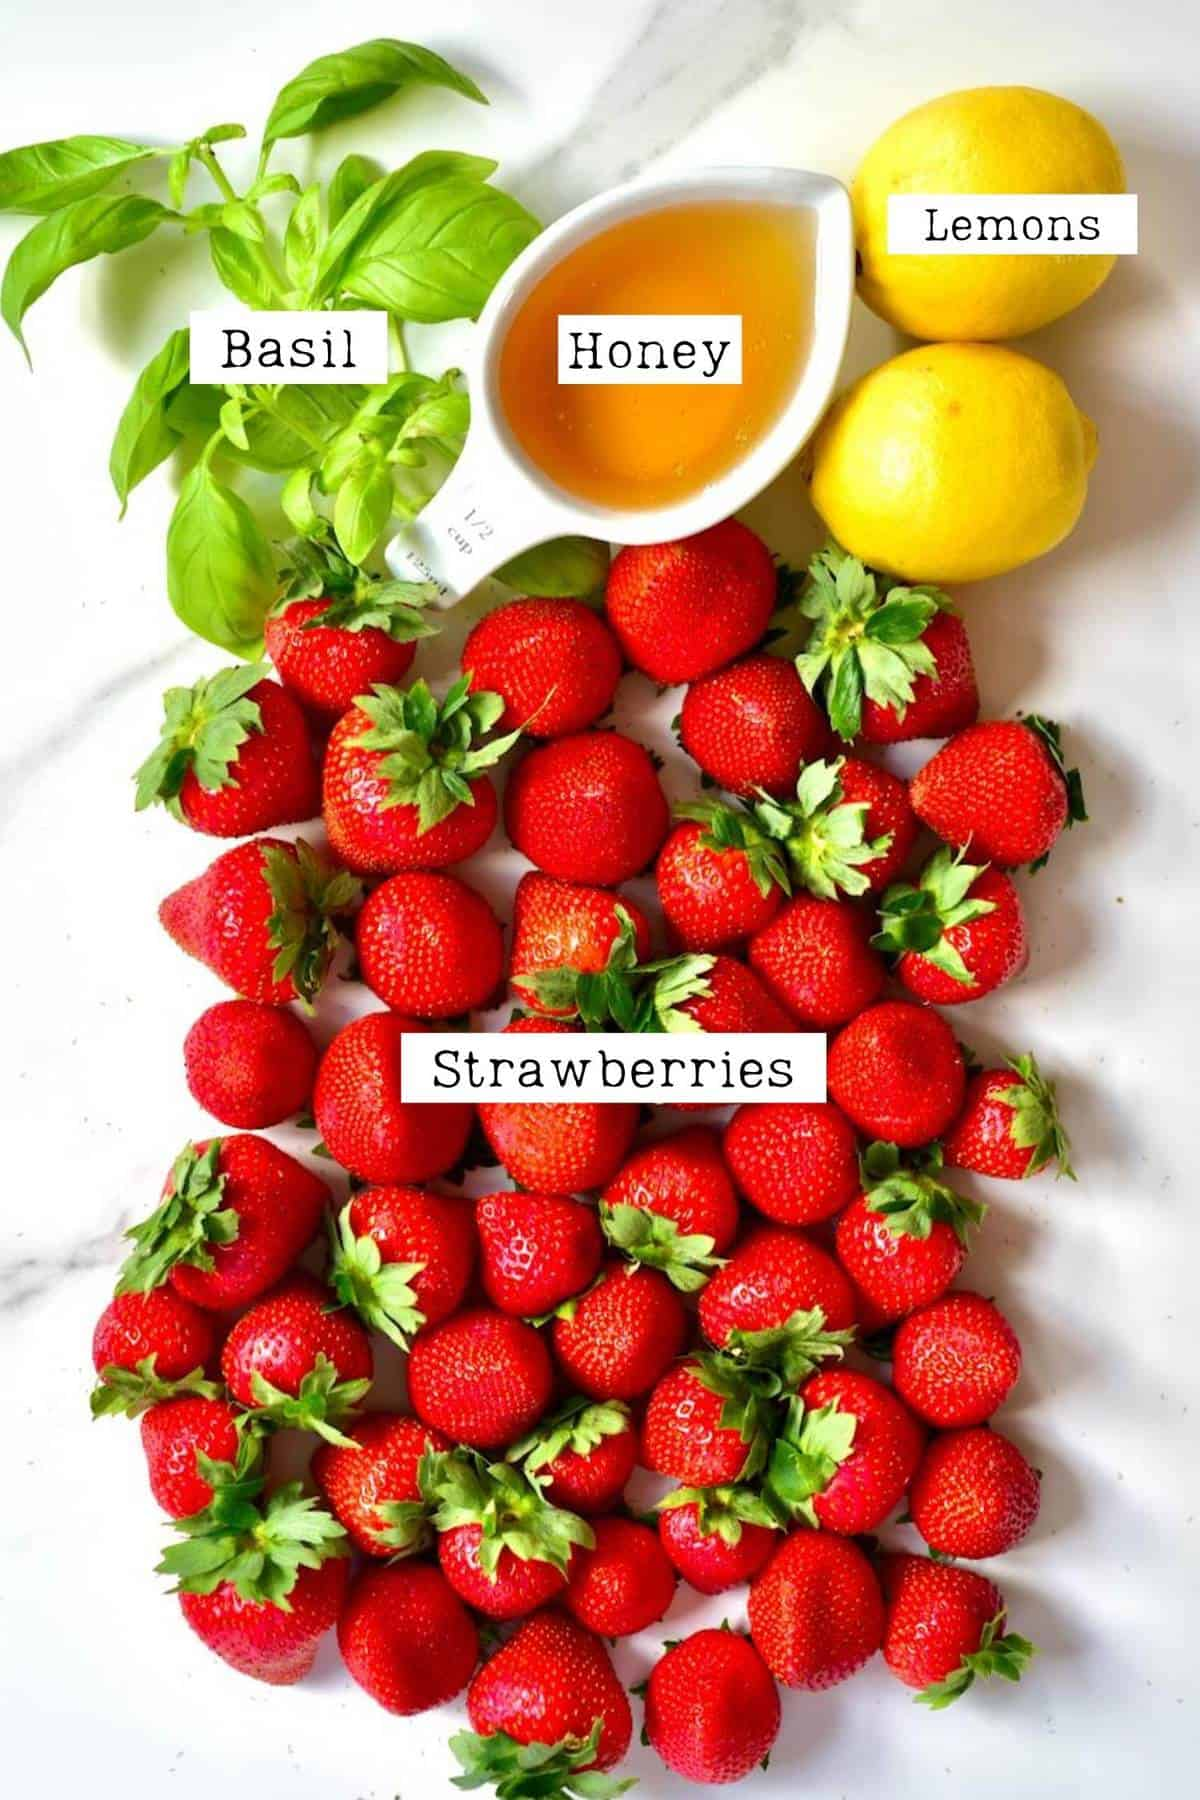 Ingredients for Strawberries Sorbet